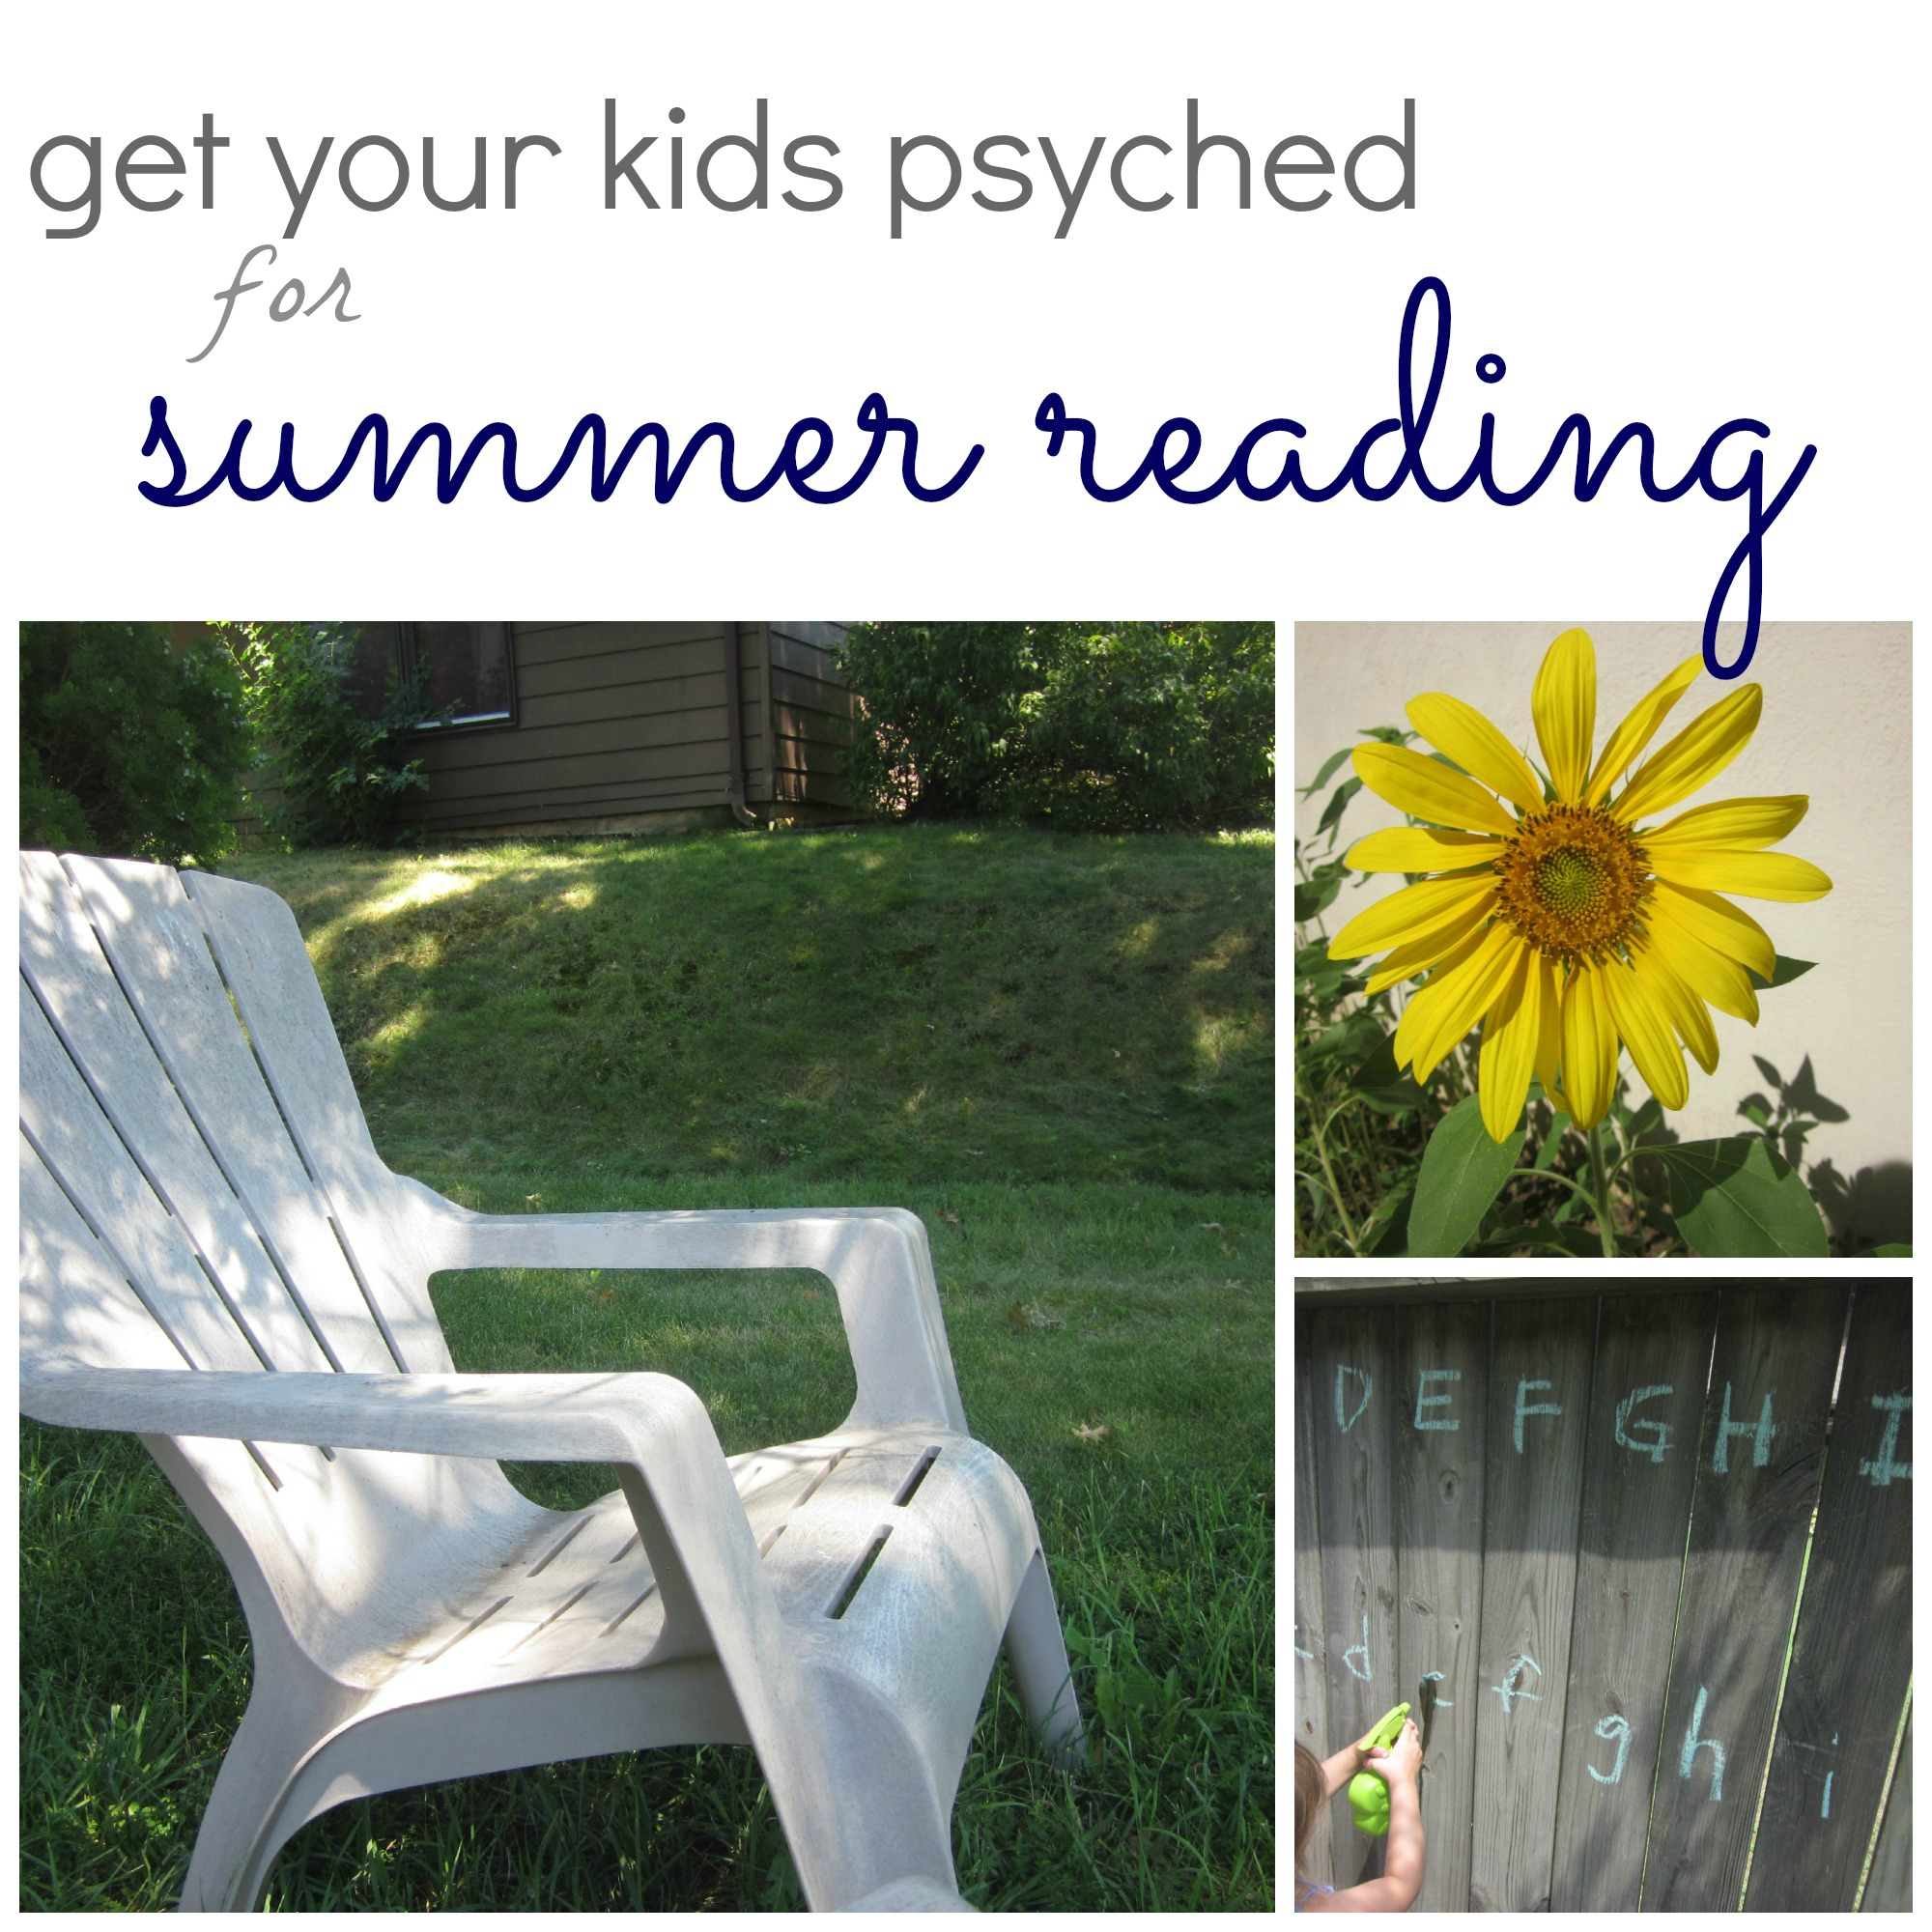 5 ways to get your kids psyched for summer reading